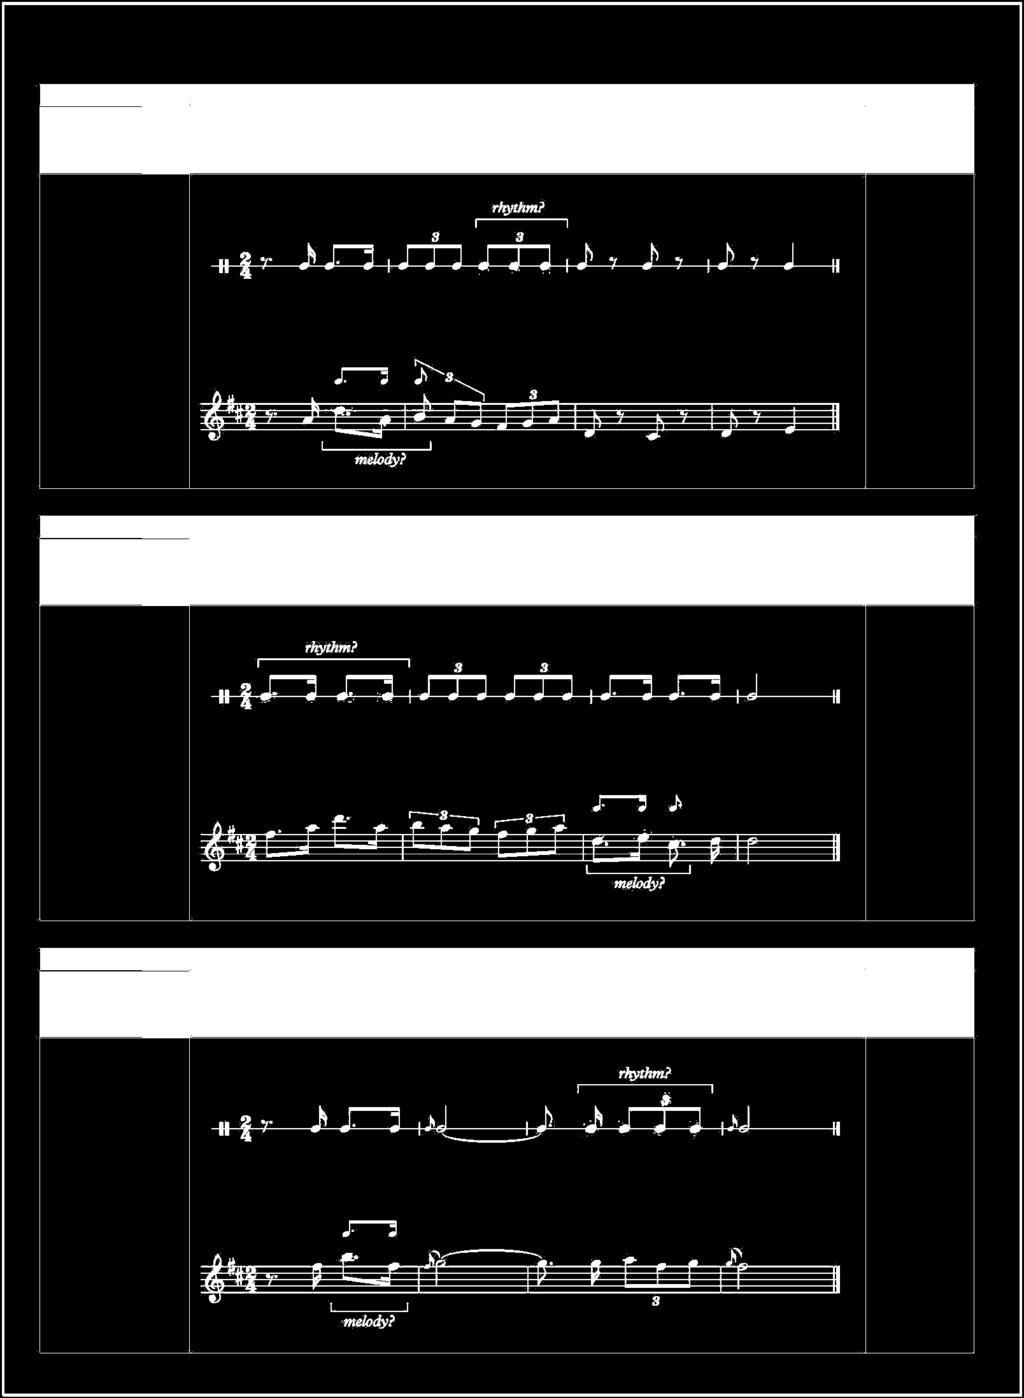 Practice Musical Dictation Questions Musical Dictation - J.S. Bach: Brandenburg Concerto no. 5 in D major (3rd movement) (a) Rhythm correct (3) (b) Pitches correct (3) 6 Musical Dictation - J.S. Bach: Brandenburg Concerto no. 5 in D major (3rd movement) 2 (a) Rhythm correct (4) 2 (b) Pitches correct (3) 7 Musical Dictation - J.